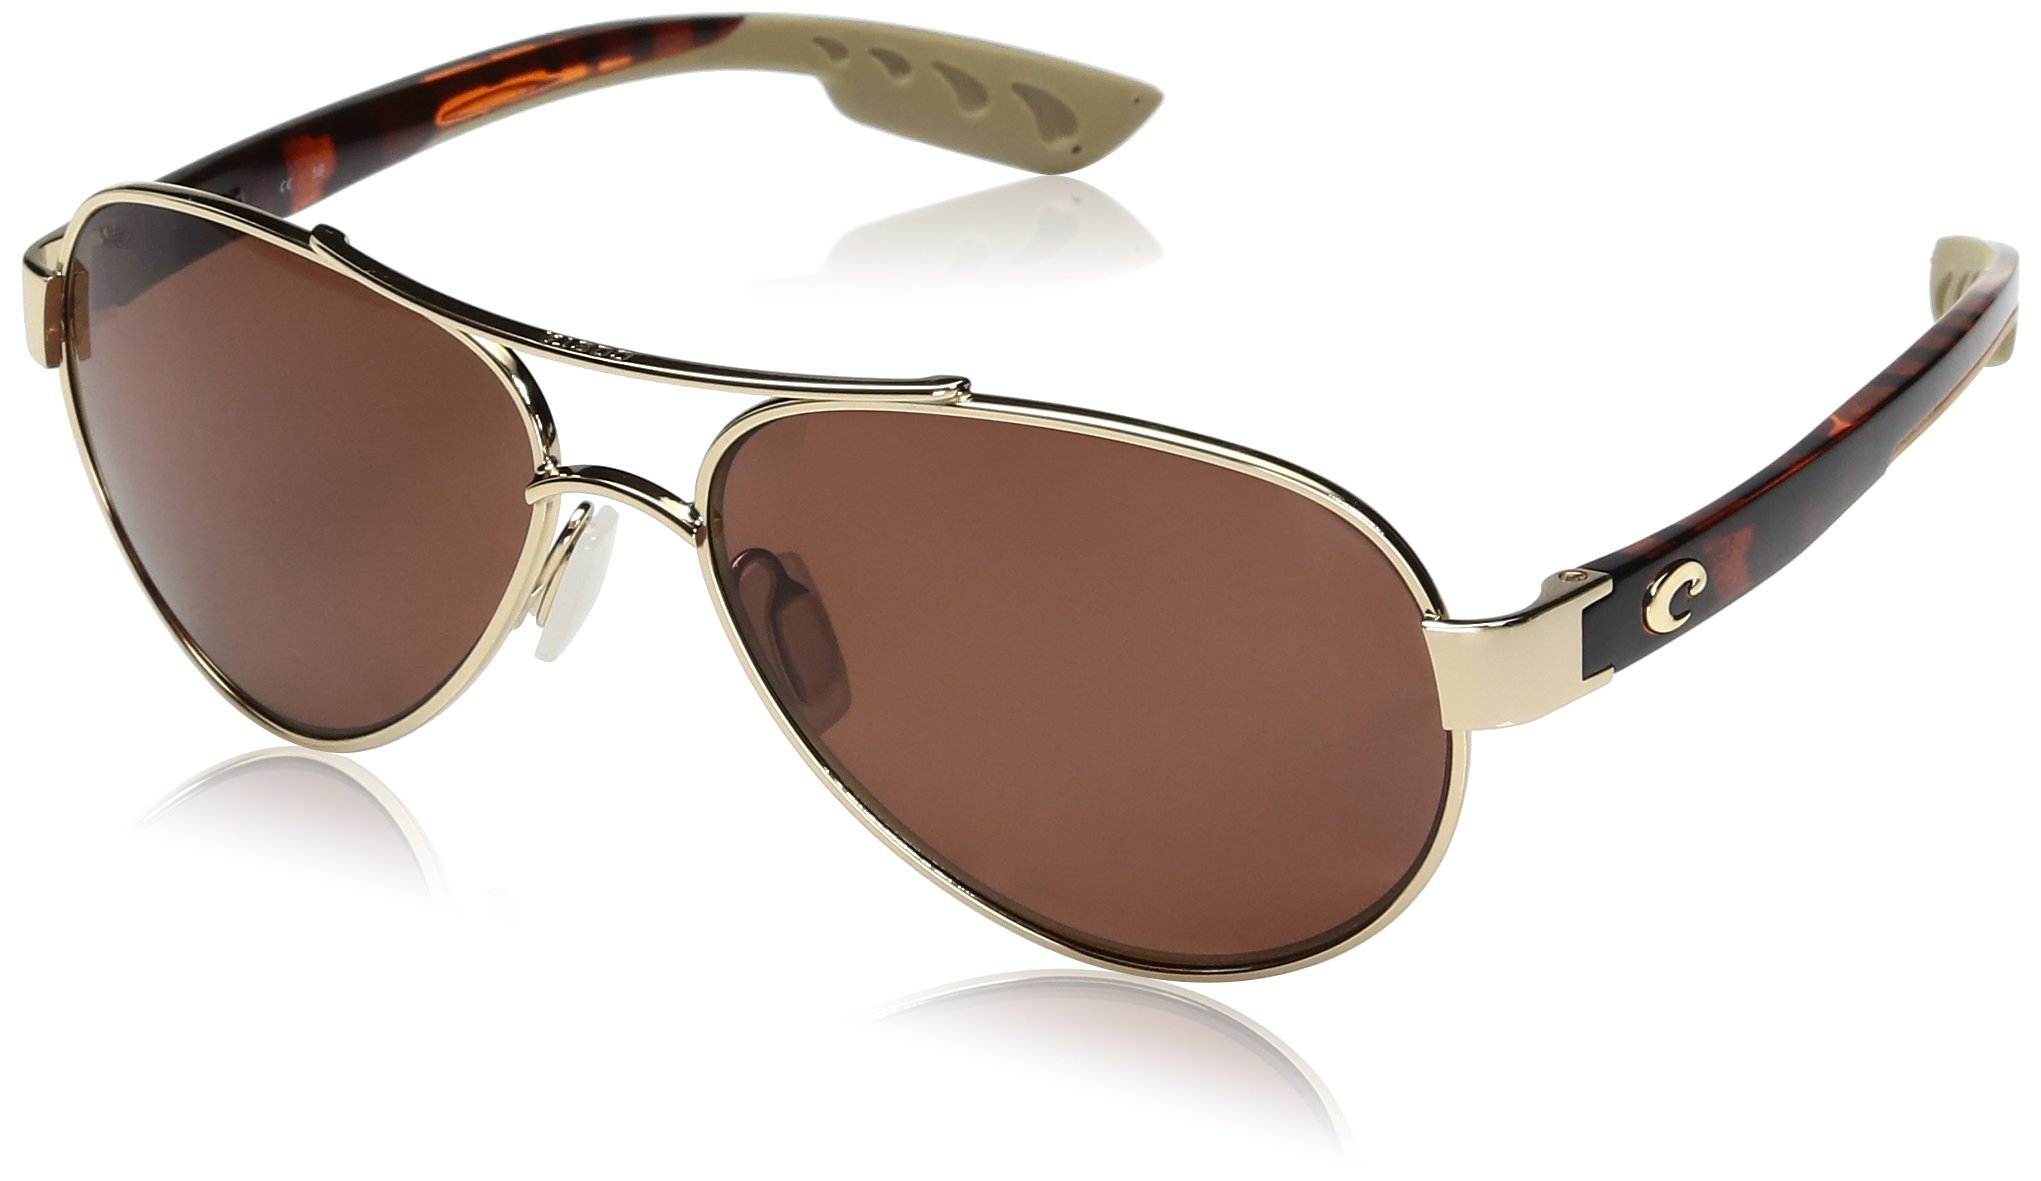 Costa del Mar Women's South Point Polarized Aviator Sunglasses, Rose Gold w/Light Tortoise Templescopper 580P, 59 mm